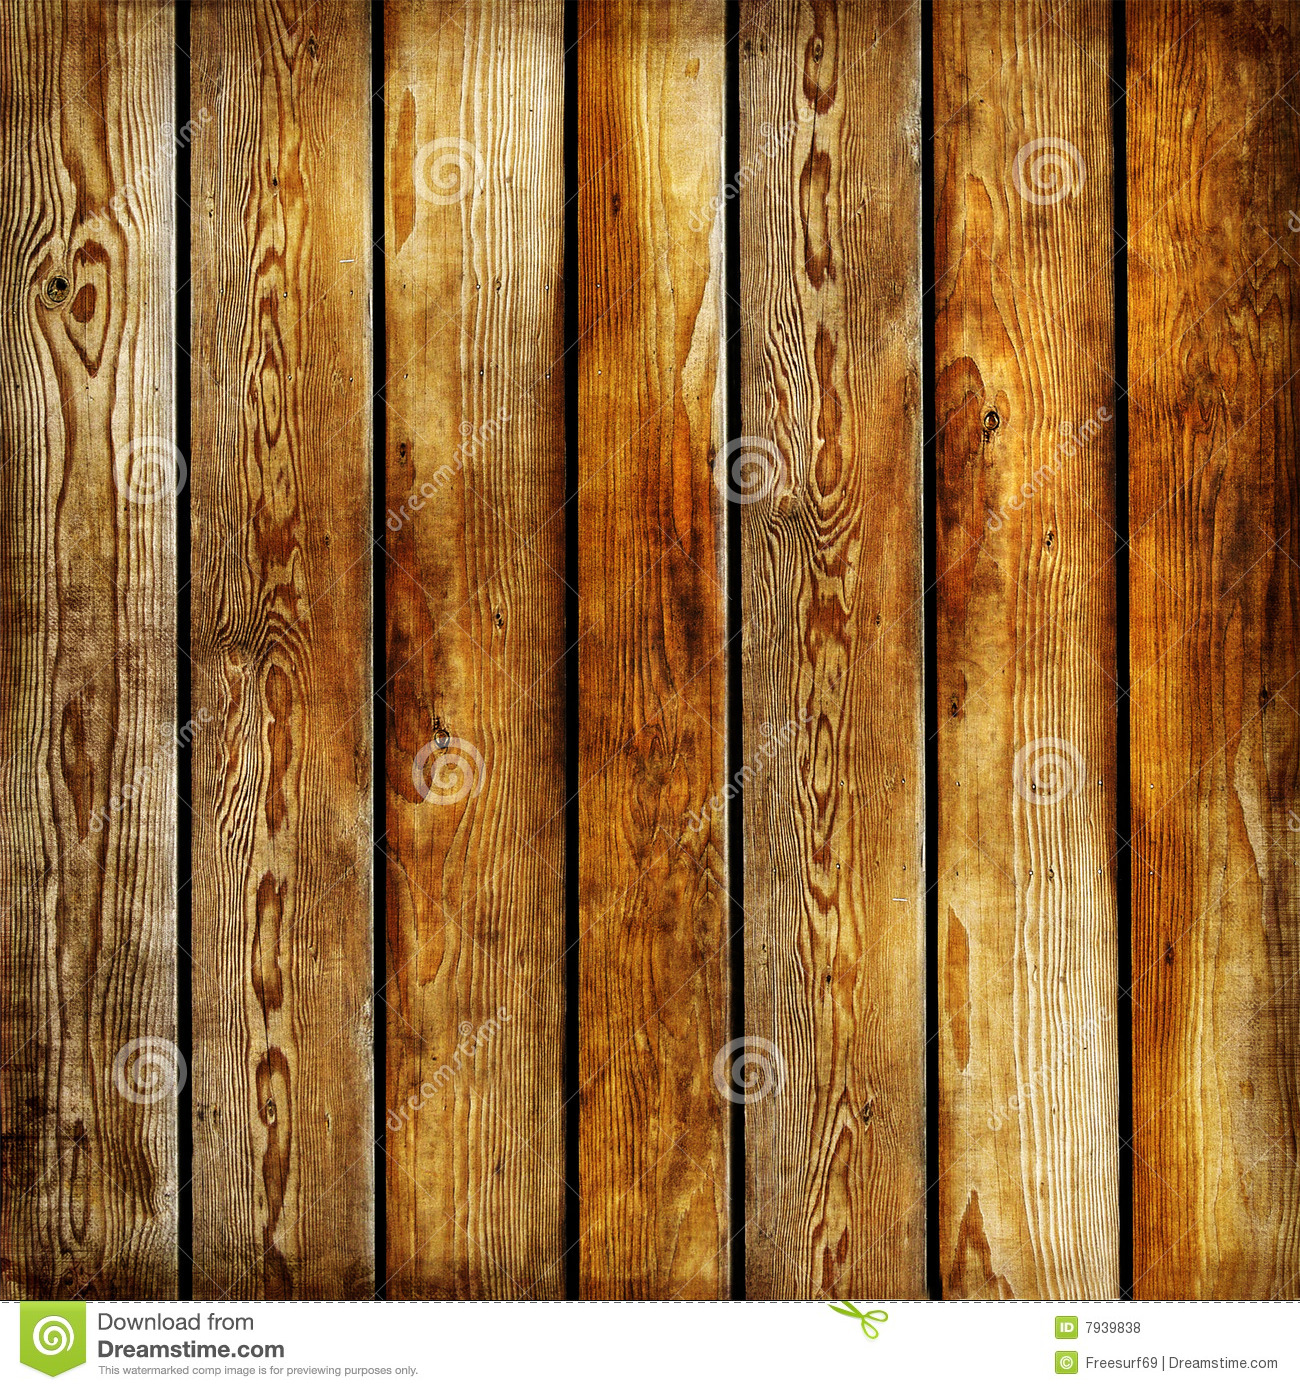 Wooden Planks Royalty Free Stock Photos - Image: 7939838